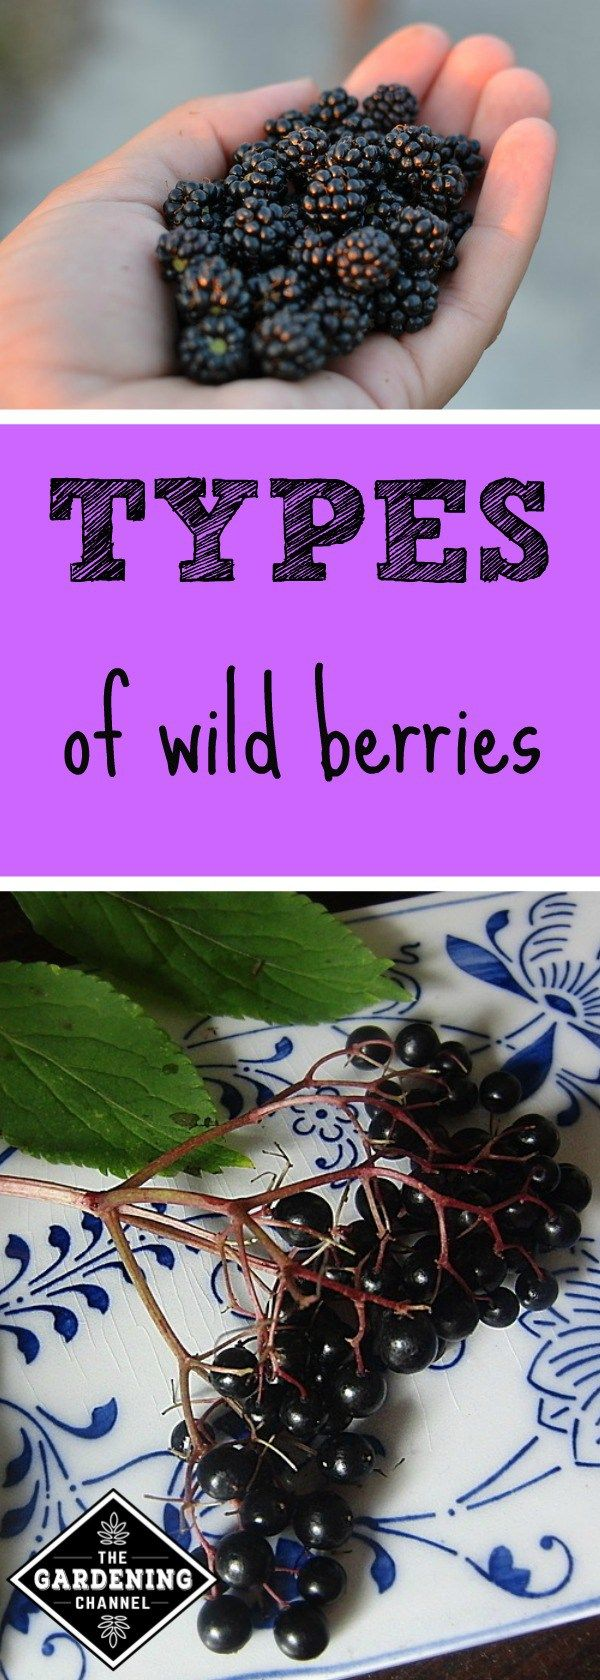 berries you can find in the wild